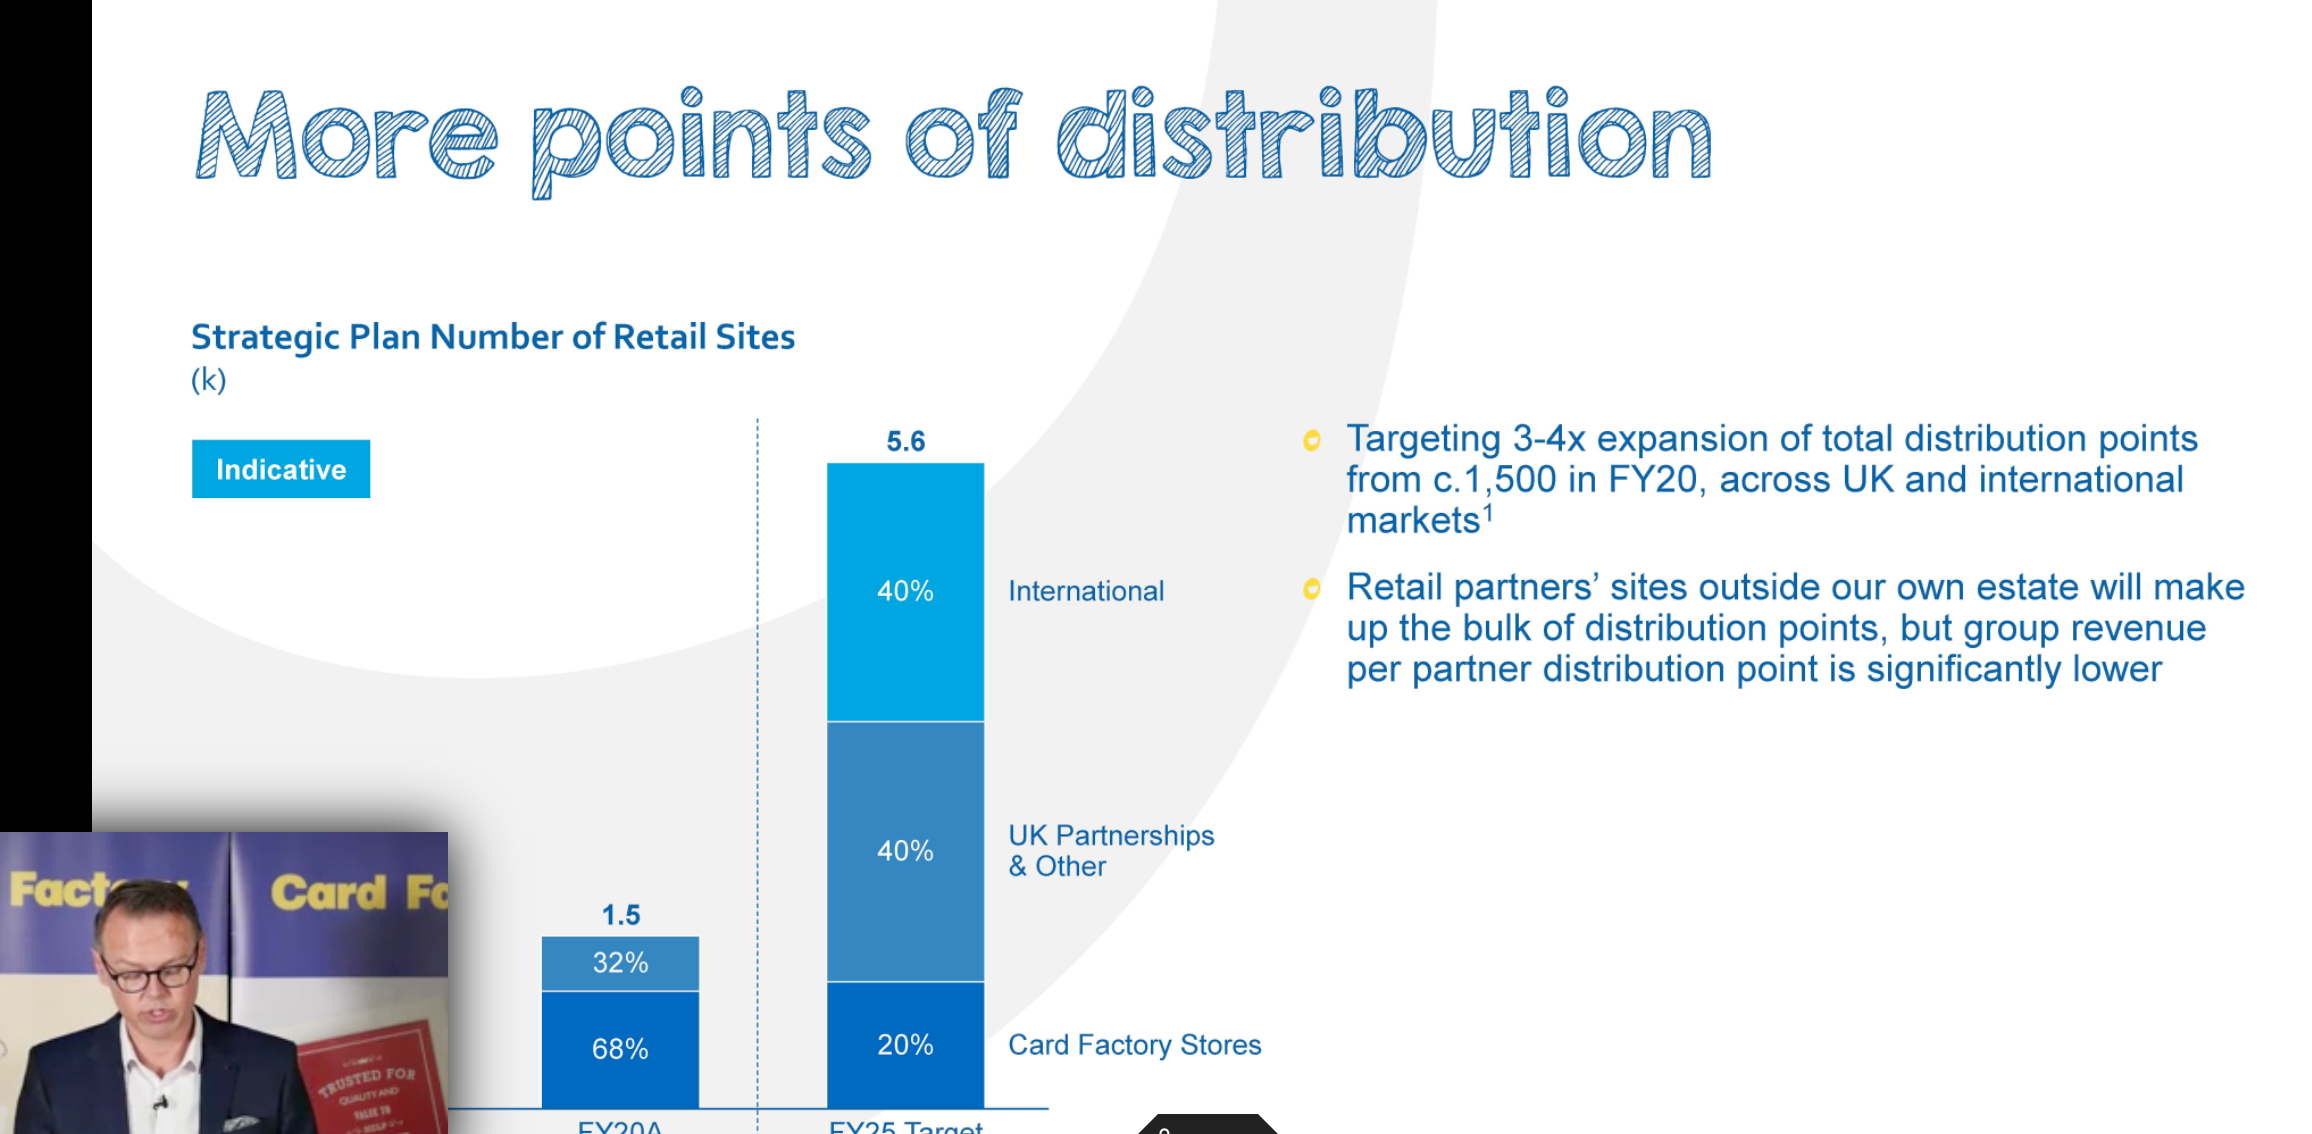 Above: Kris Lee, Card Factory's chief financial officer explained how Card Factory's 'distribution points' are planned to increase to 5,600 over the next five years.